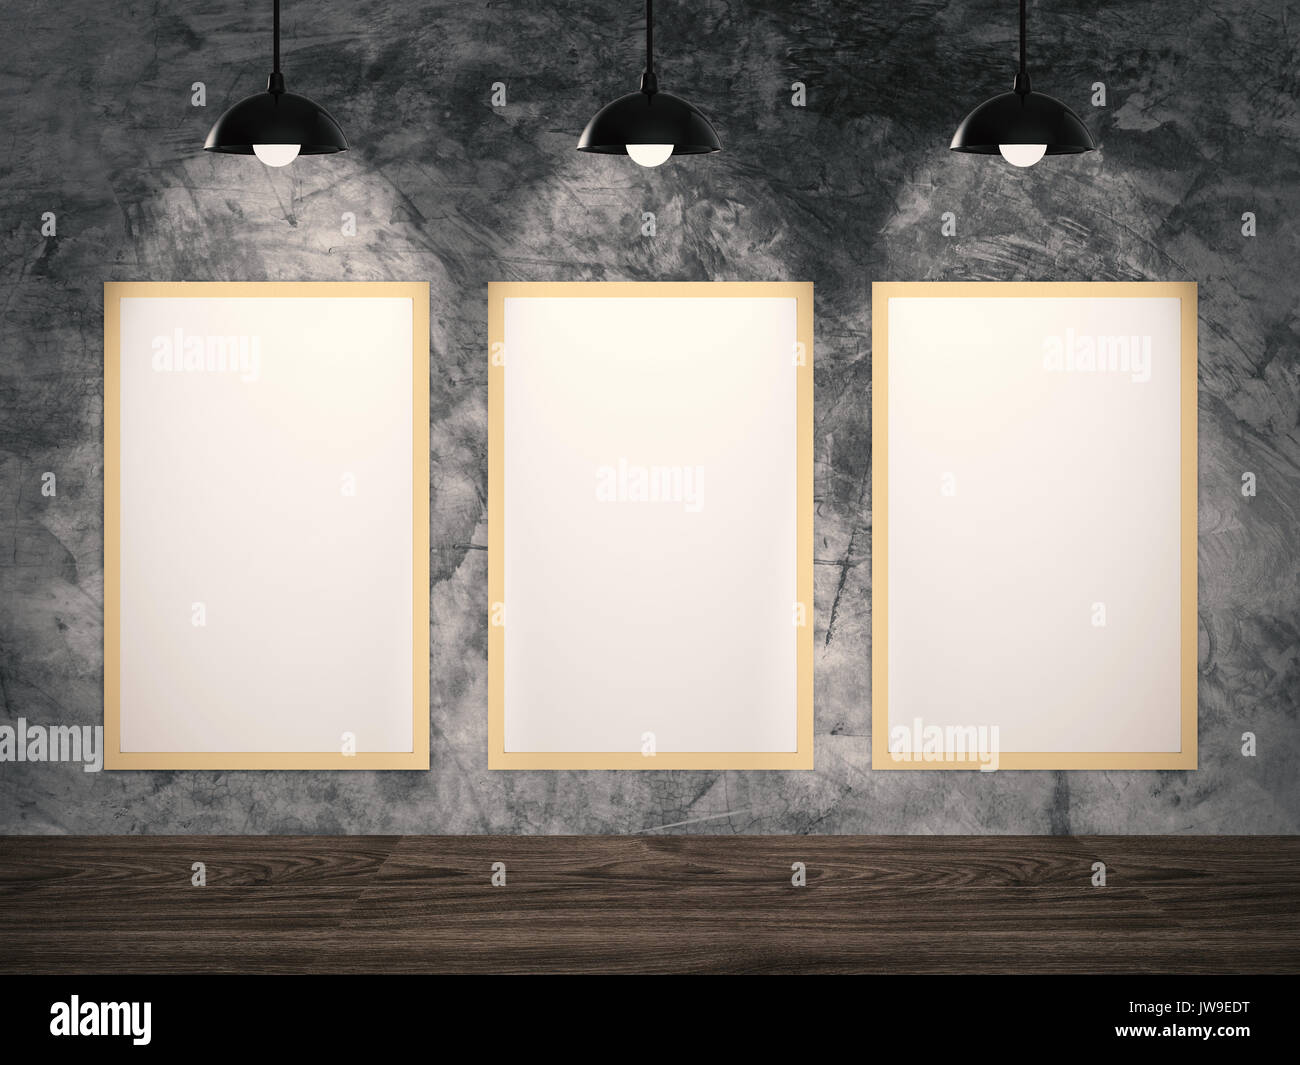 Three Blank Frames Hanging On Cement Wall Stock Photo 153258276 Alamy